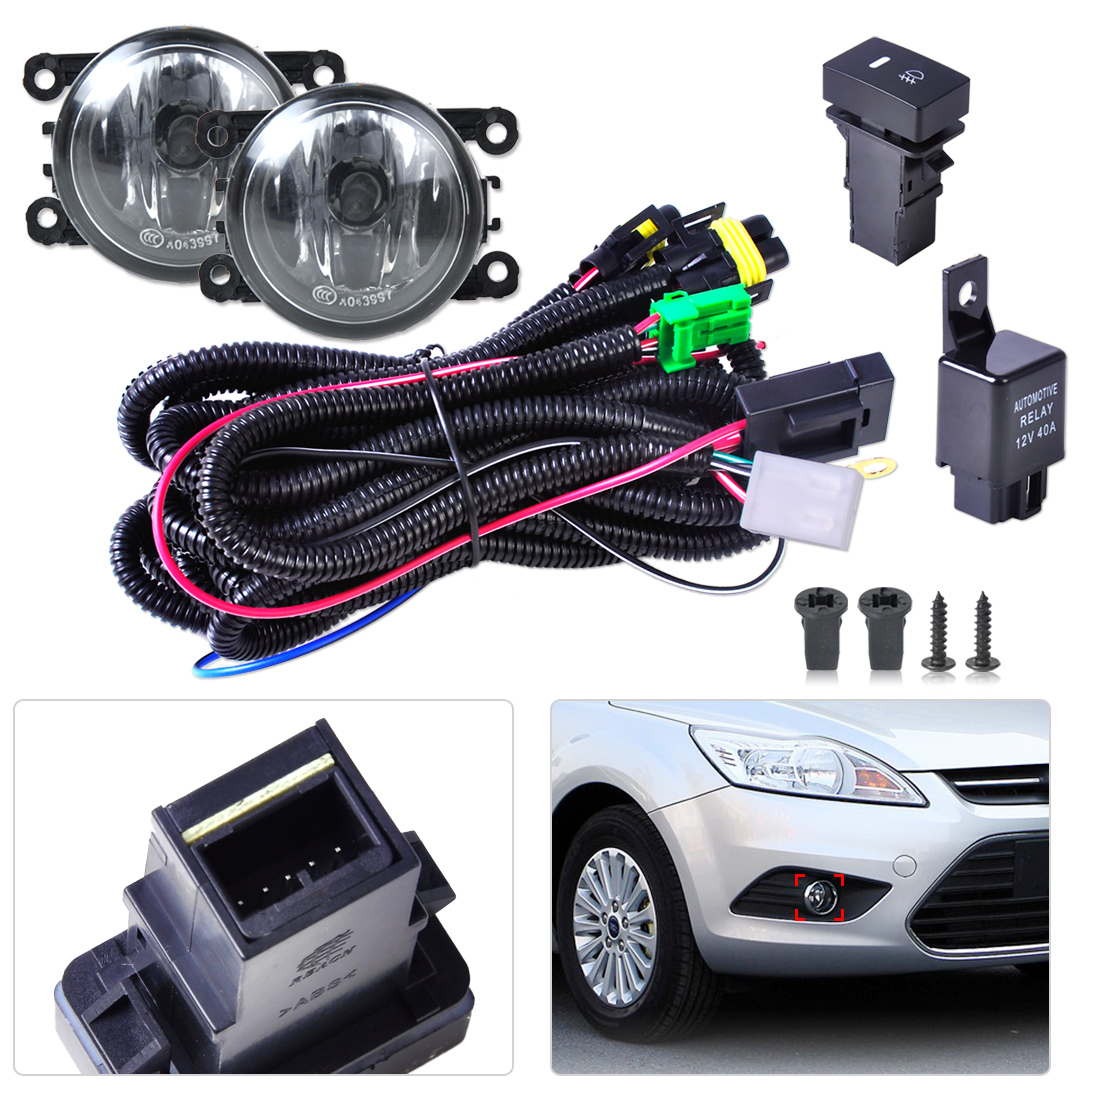 ФОТО Black New Wiring Harness Sockets + Switch + 2 Fog Lights H11 Lamp 12V 55W Kit for Ford Mustang Lincoln Navigator Subaru Outback